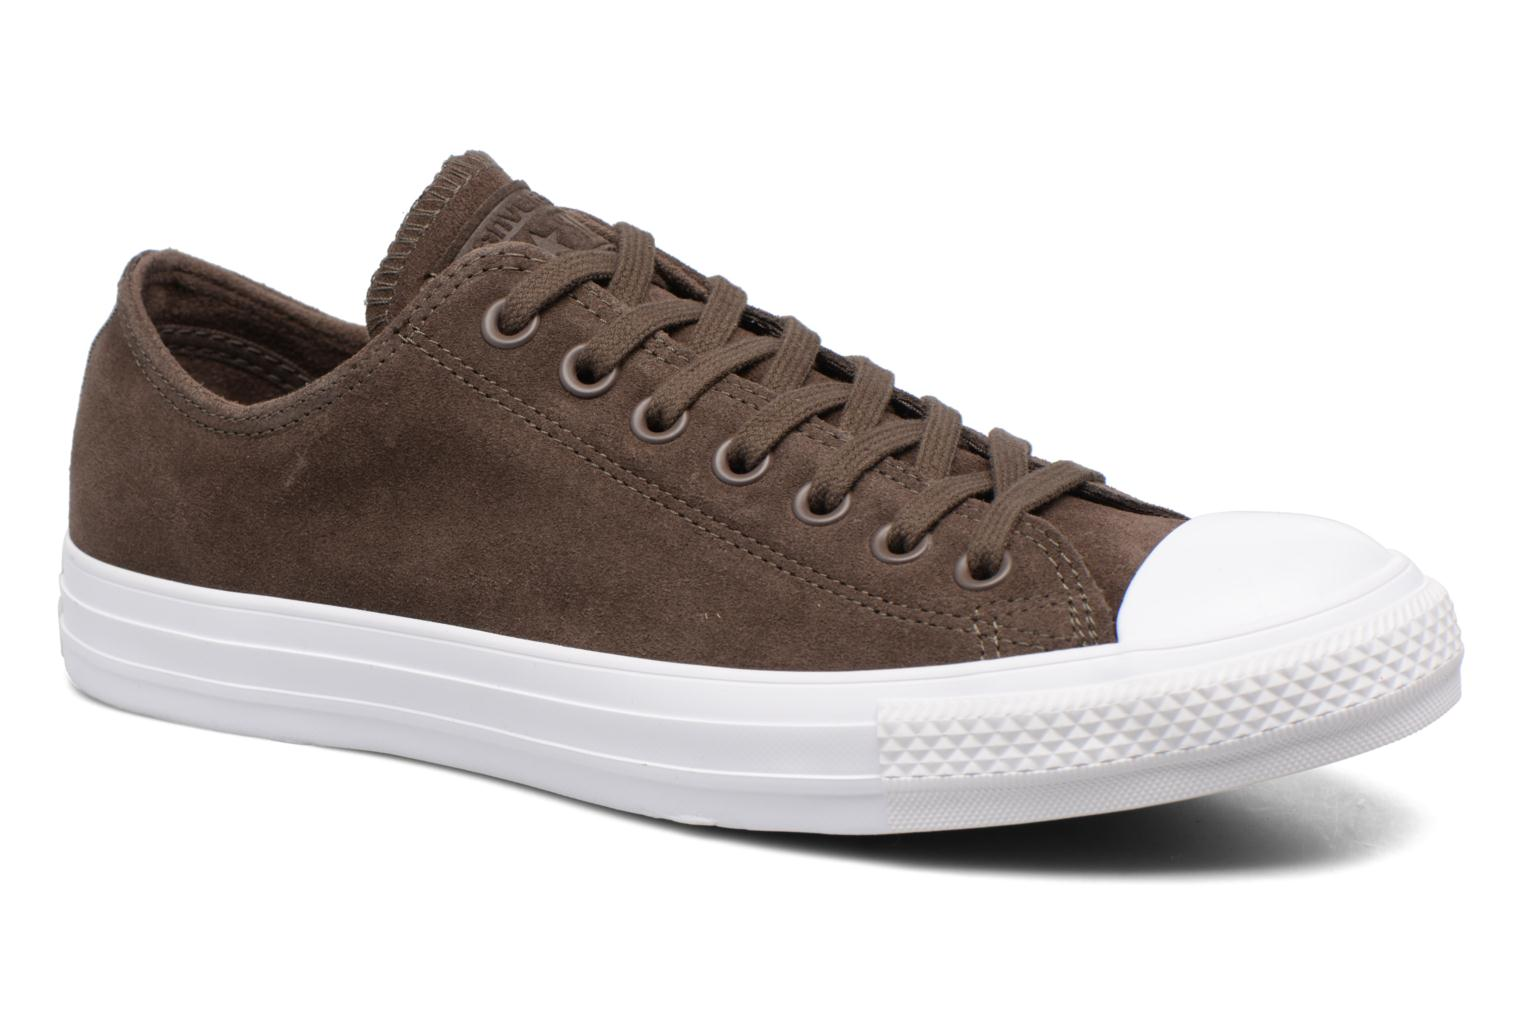 Chuck Taylor All Star Plush Suede Ox Dark Chocolate/Dark Chocolate/White